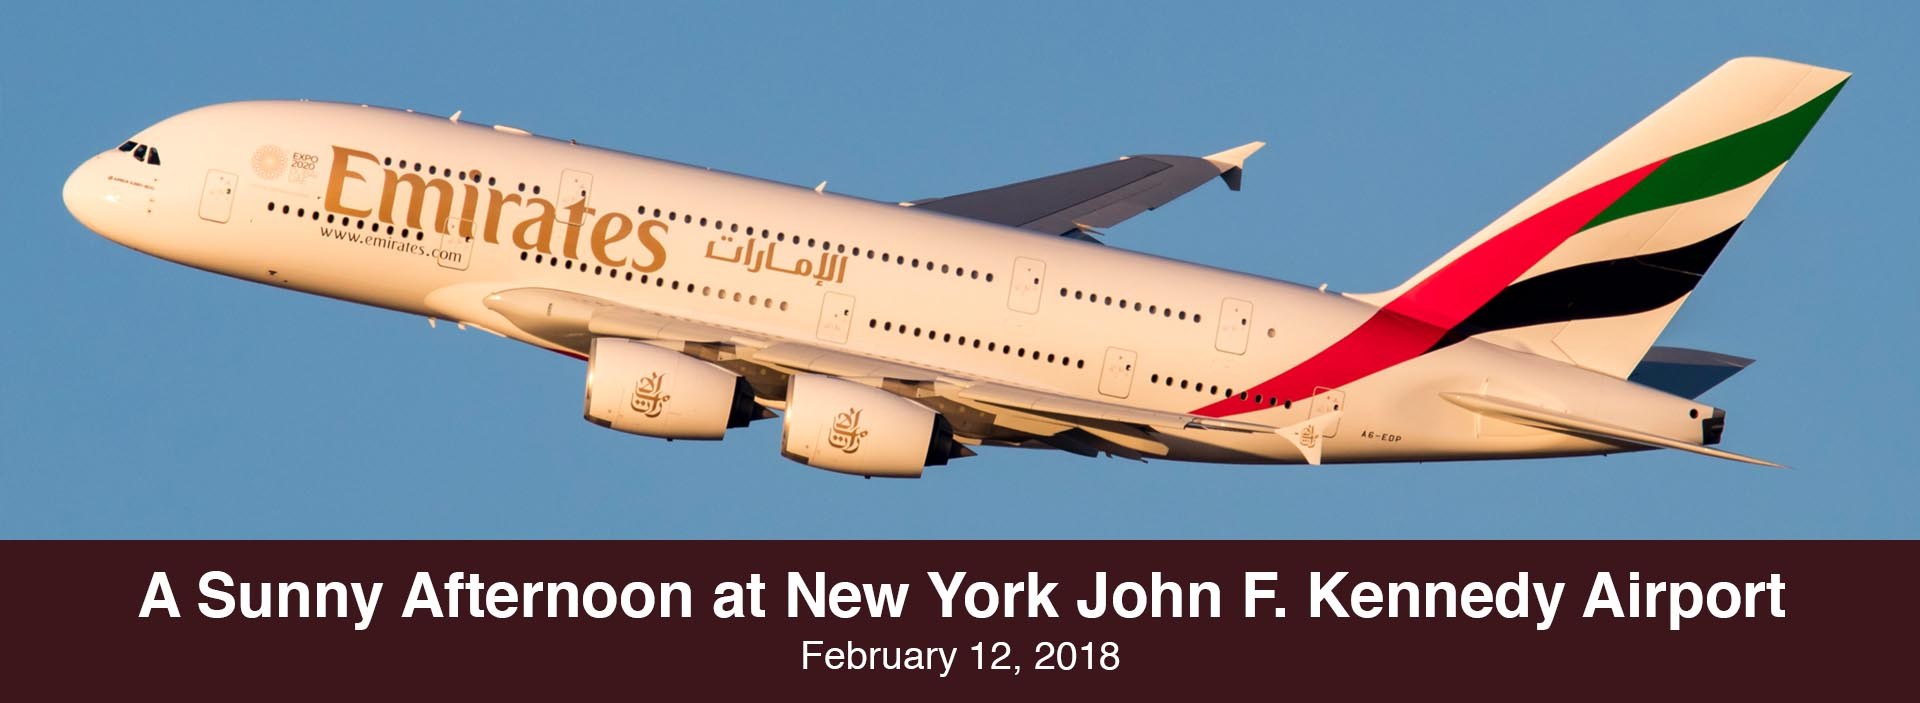 Spotting Report: A Sunny Afternoon at New York John F. Kennedy Airport